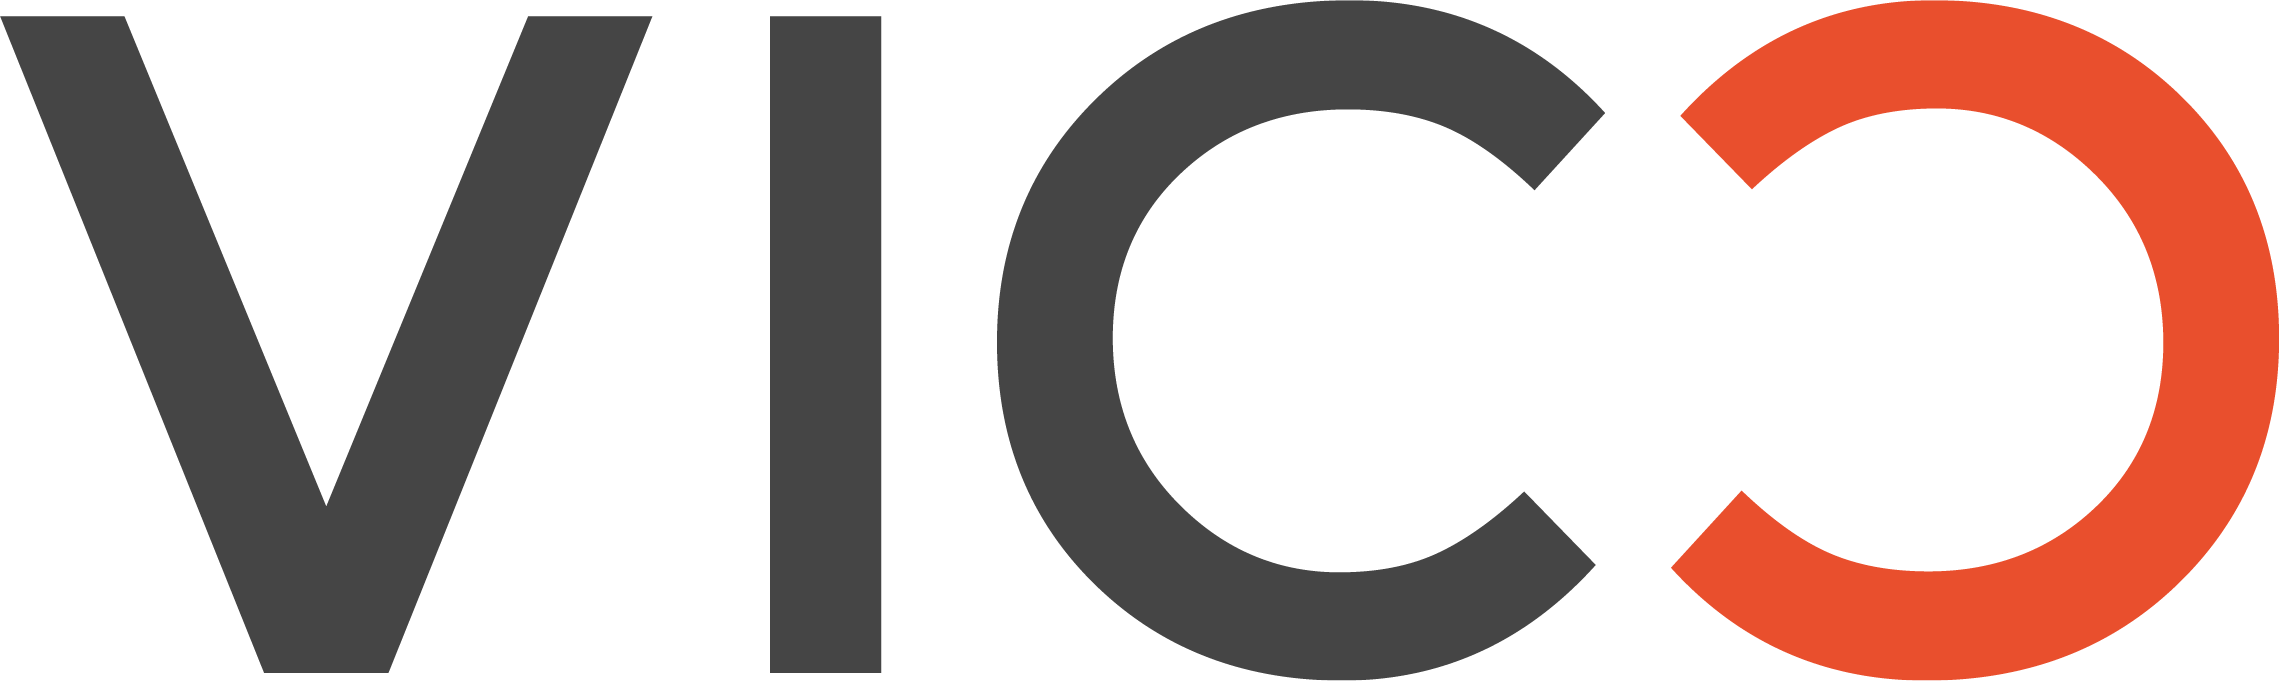 VICO Research & Consulting GmbH logo